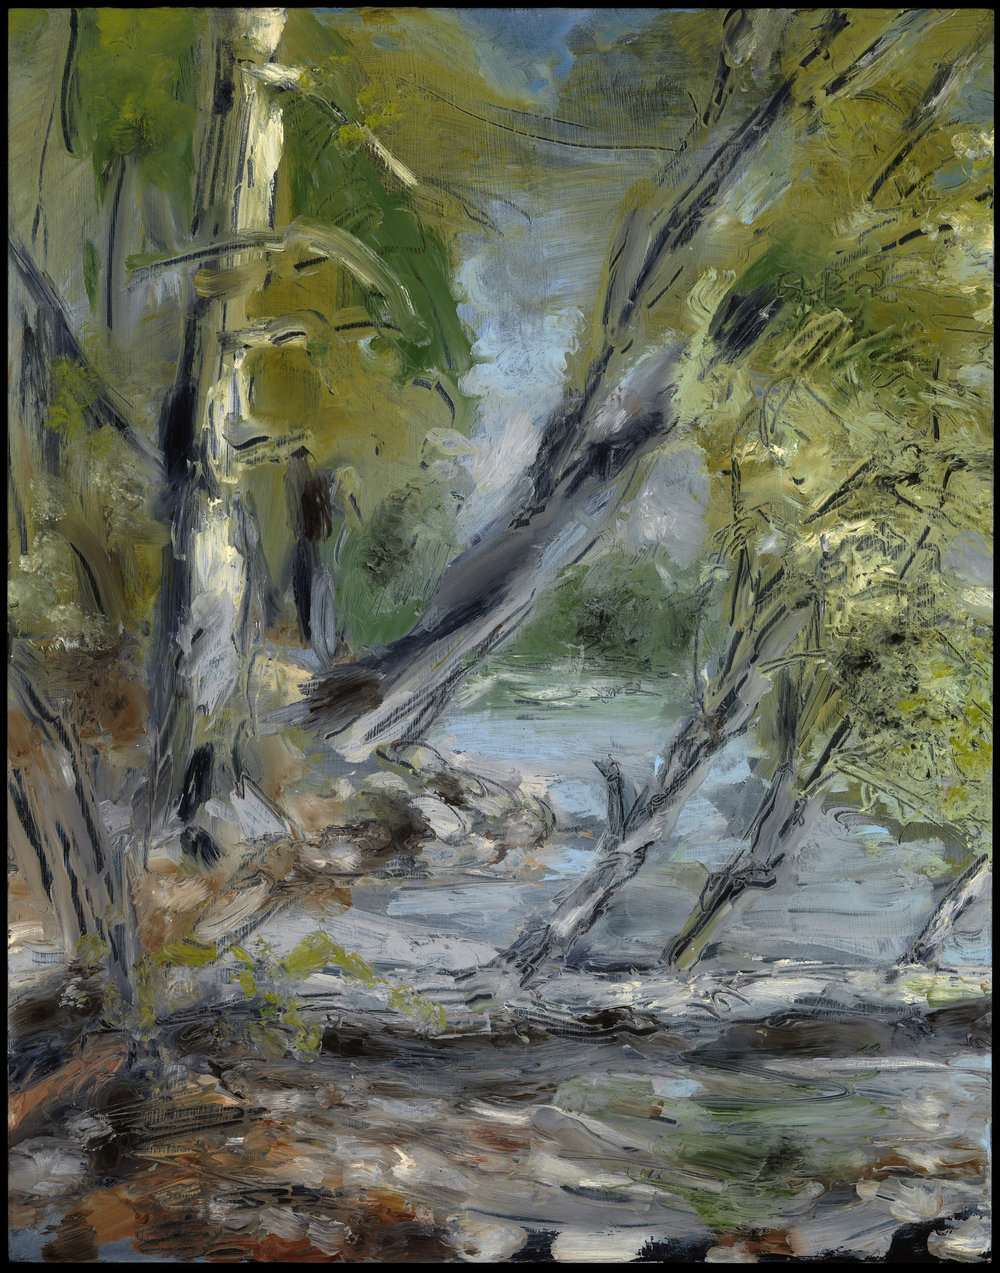 Willow in the water, Jamaica Pond